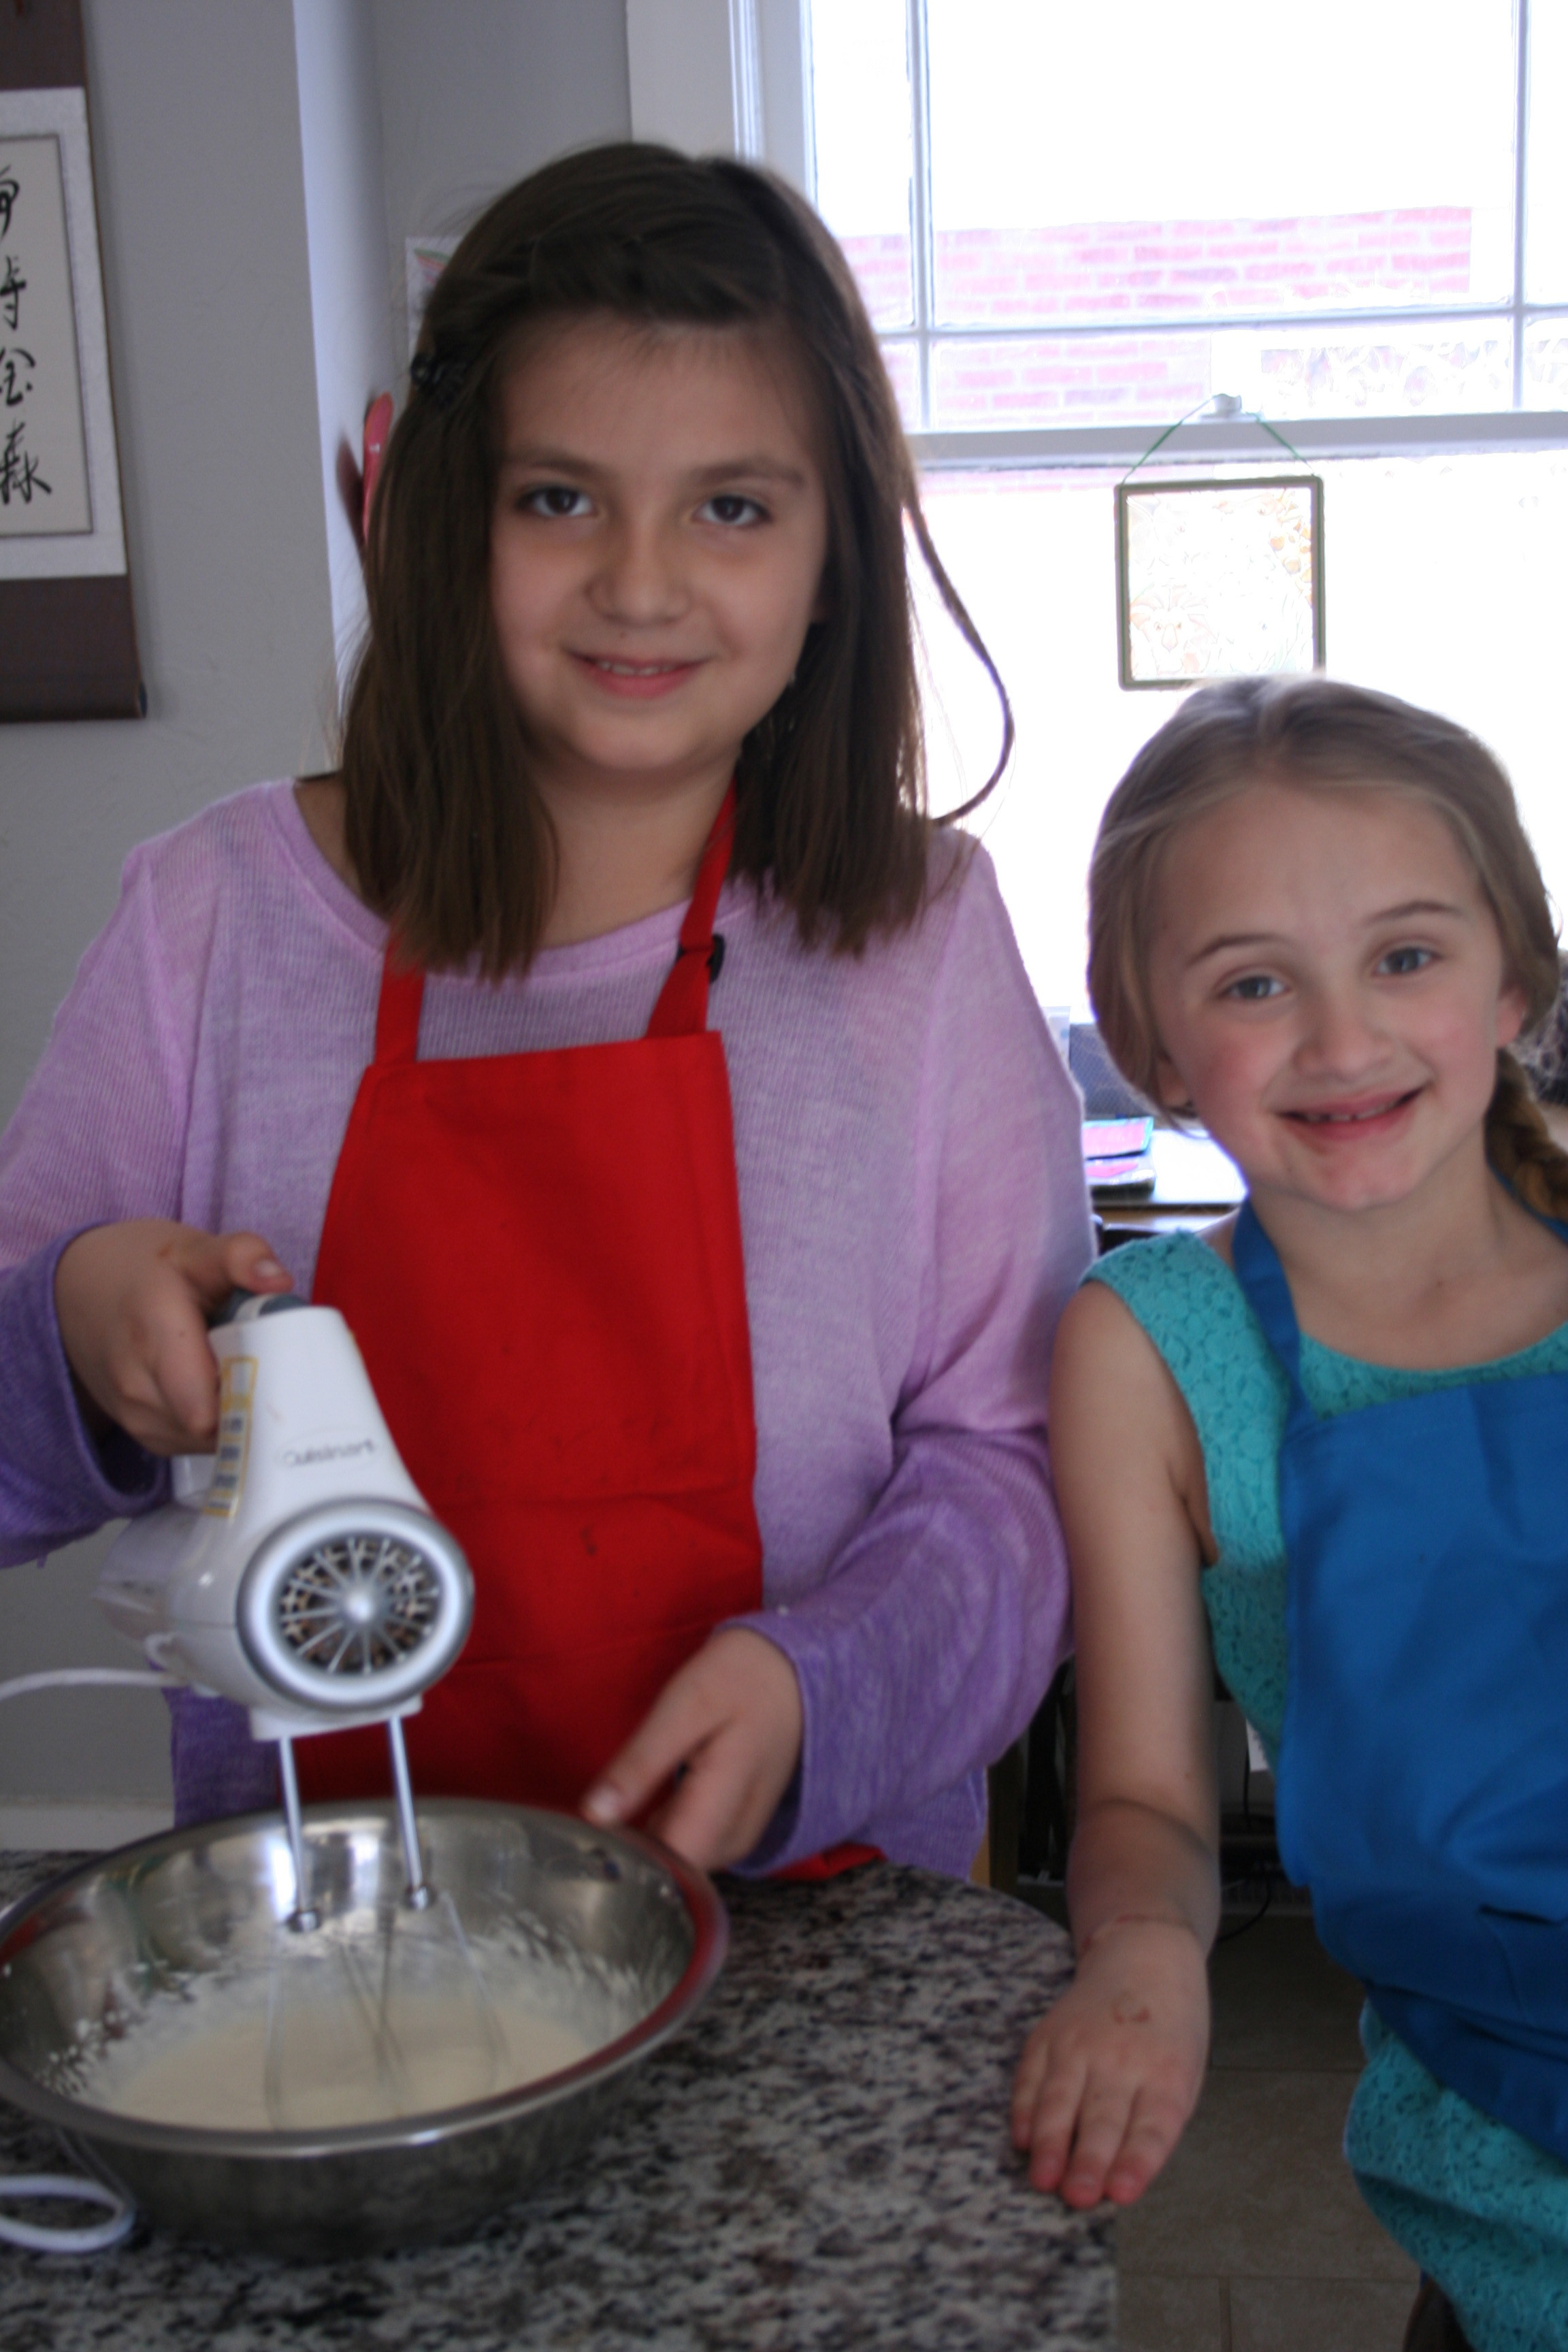 Whipping up some whipped cream!